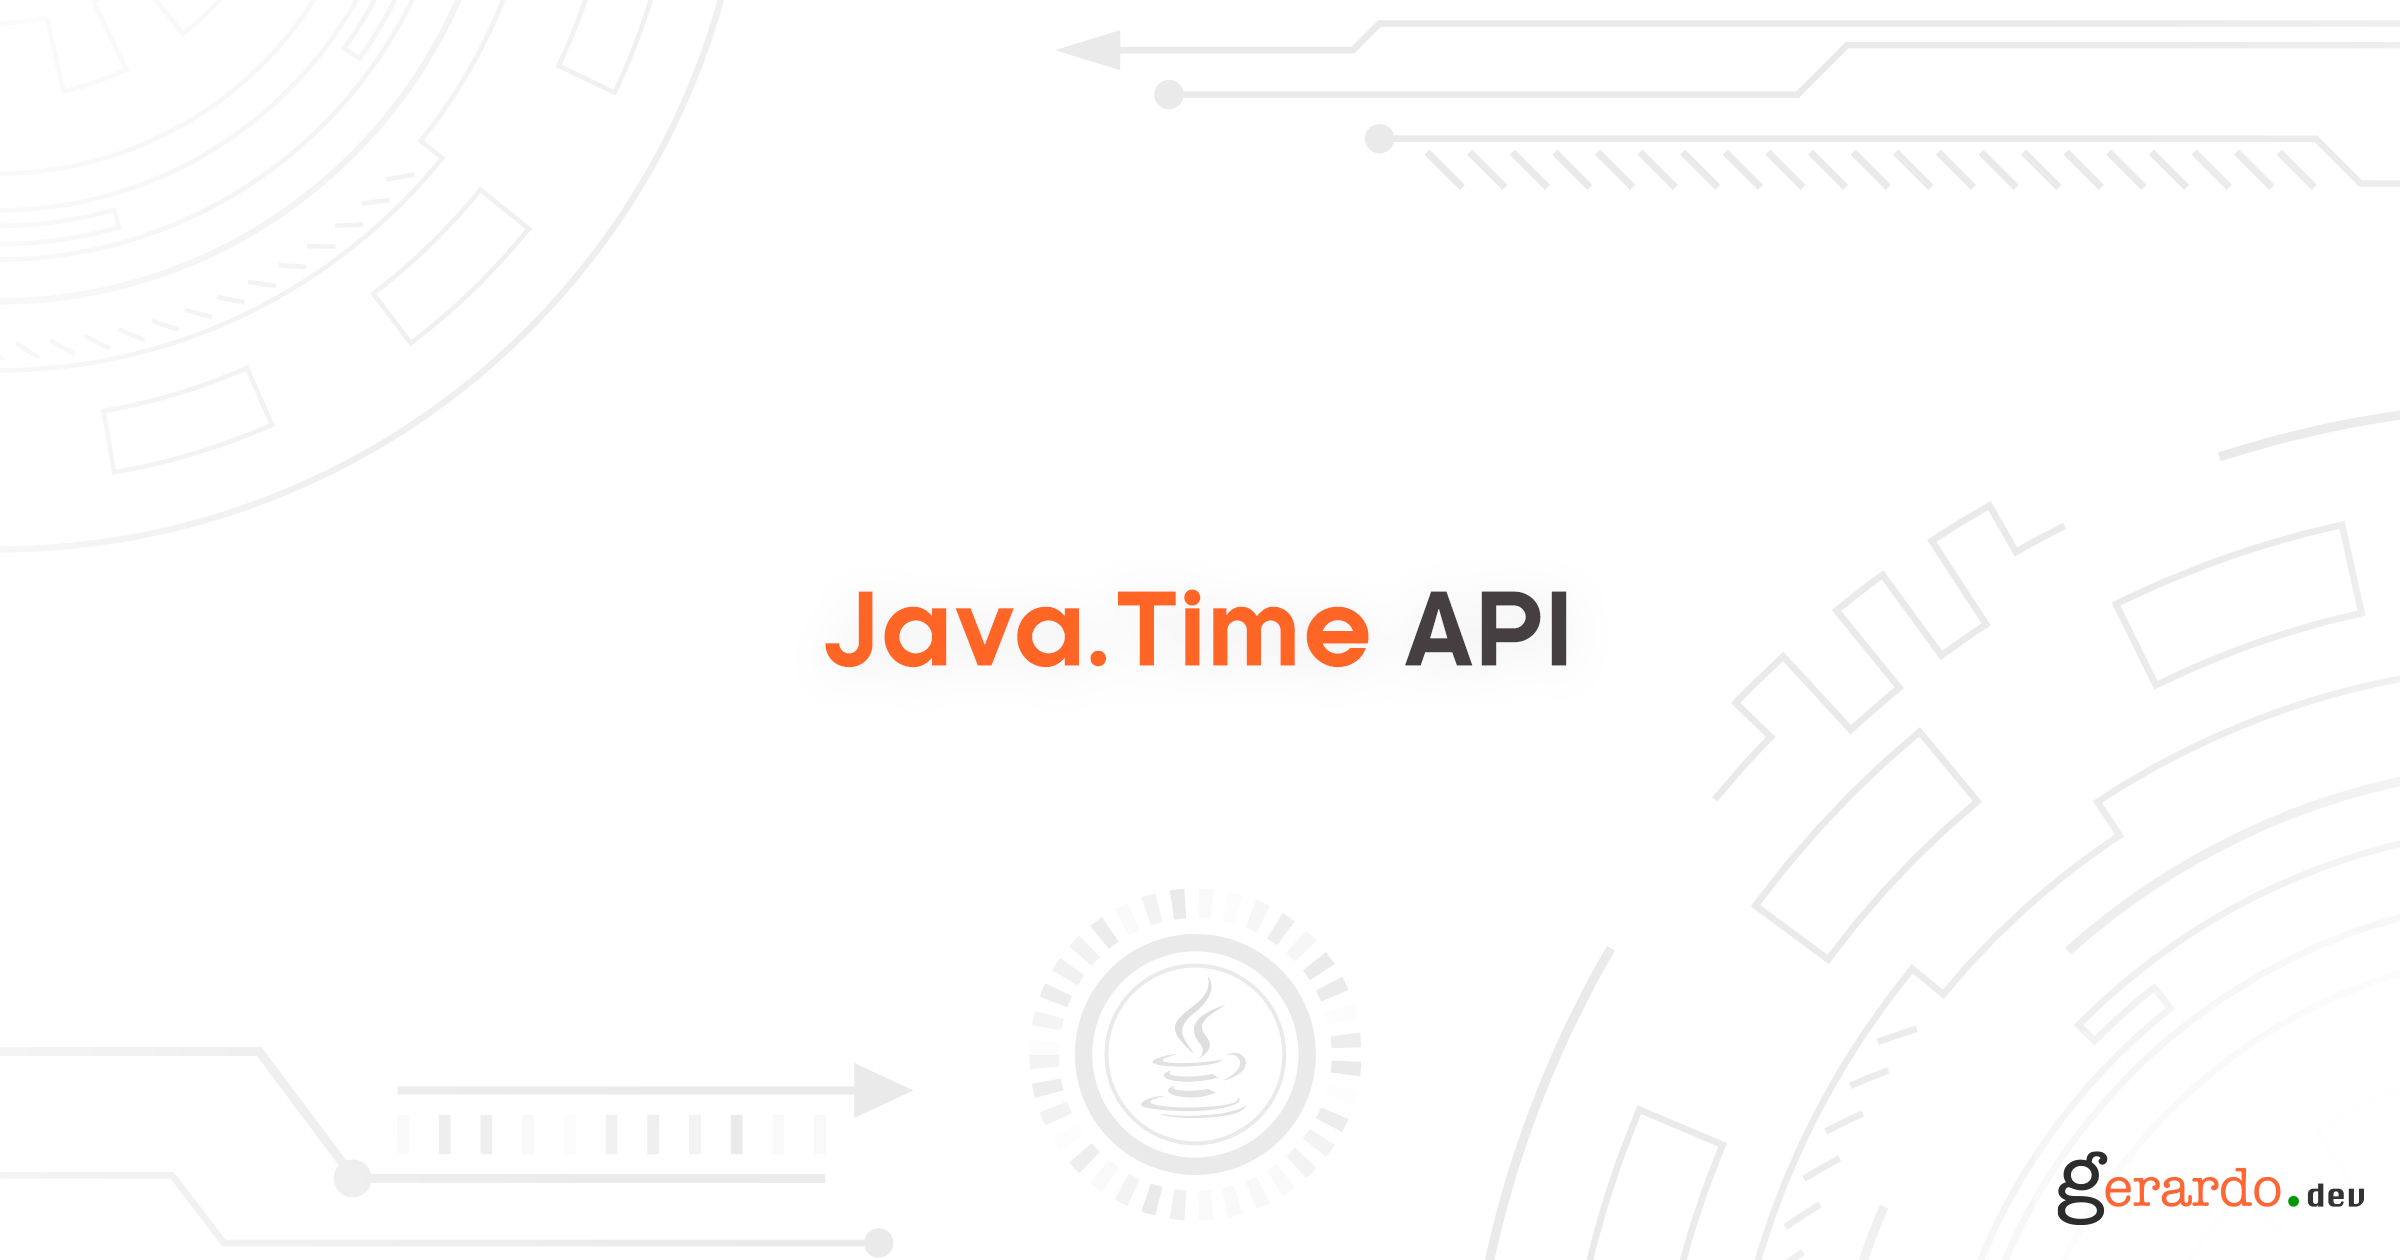 Usando el Java.Time API